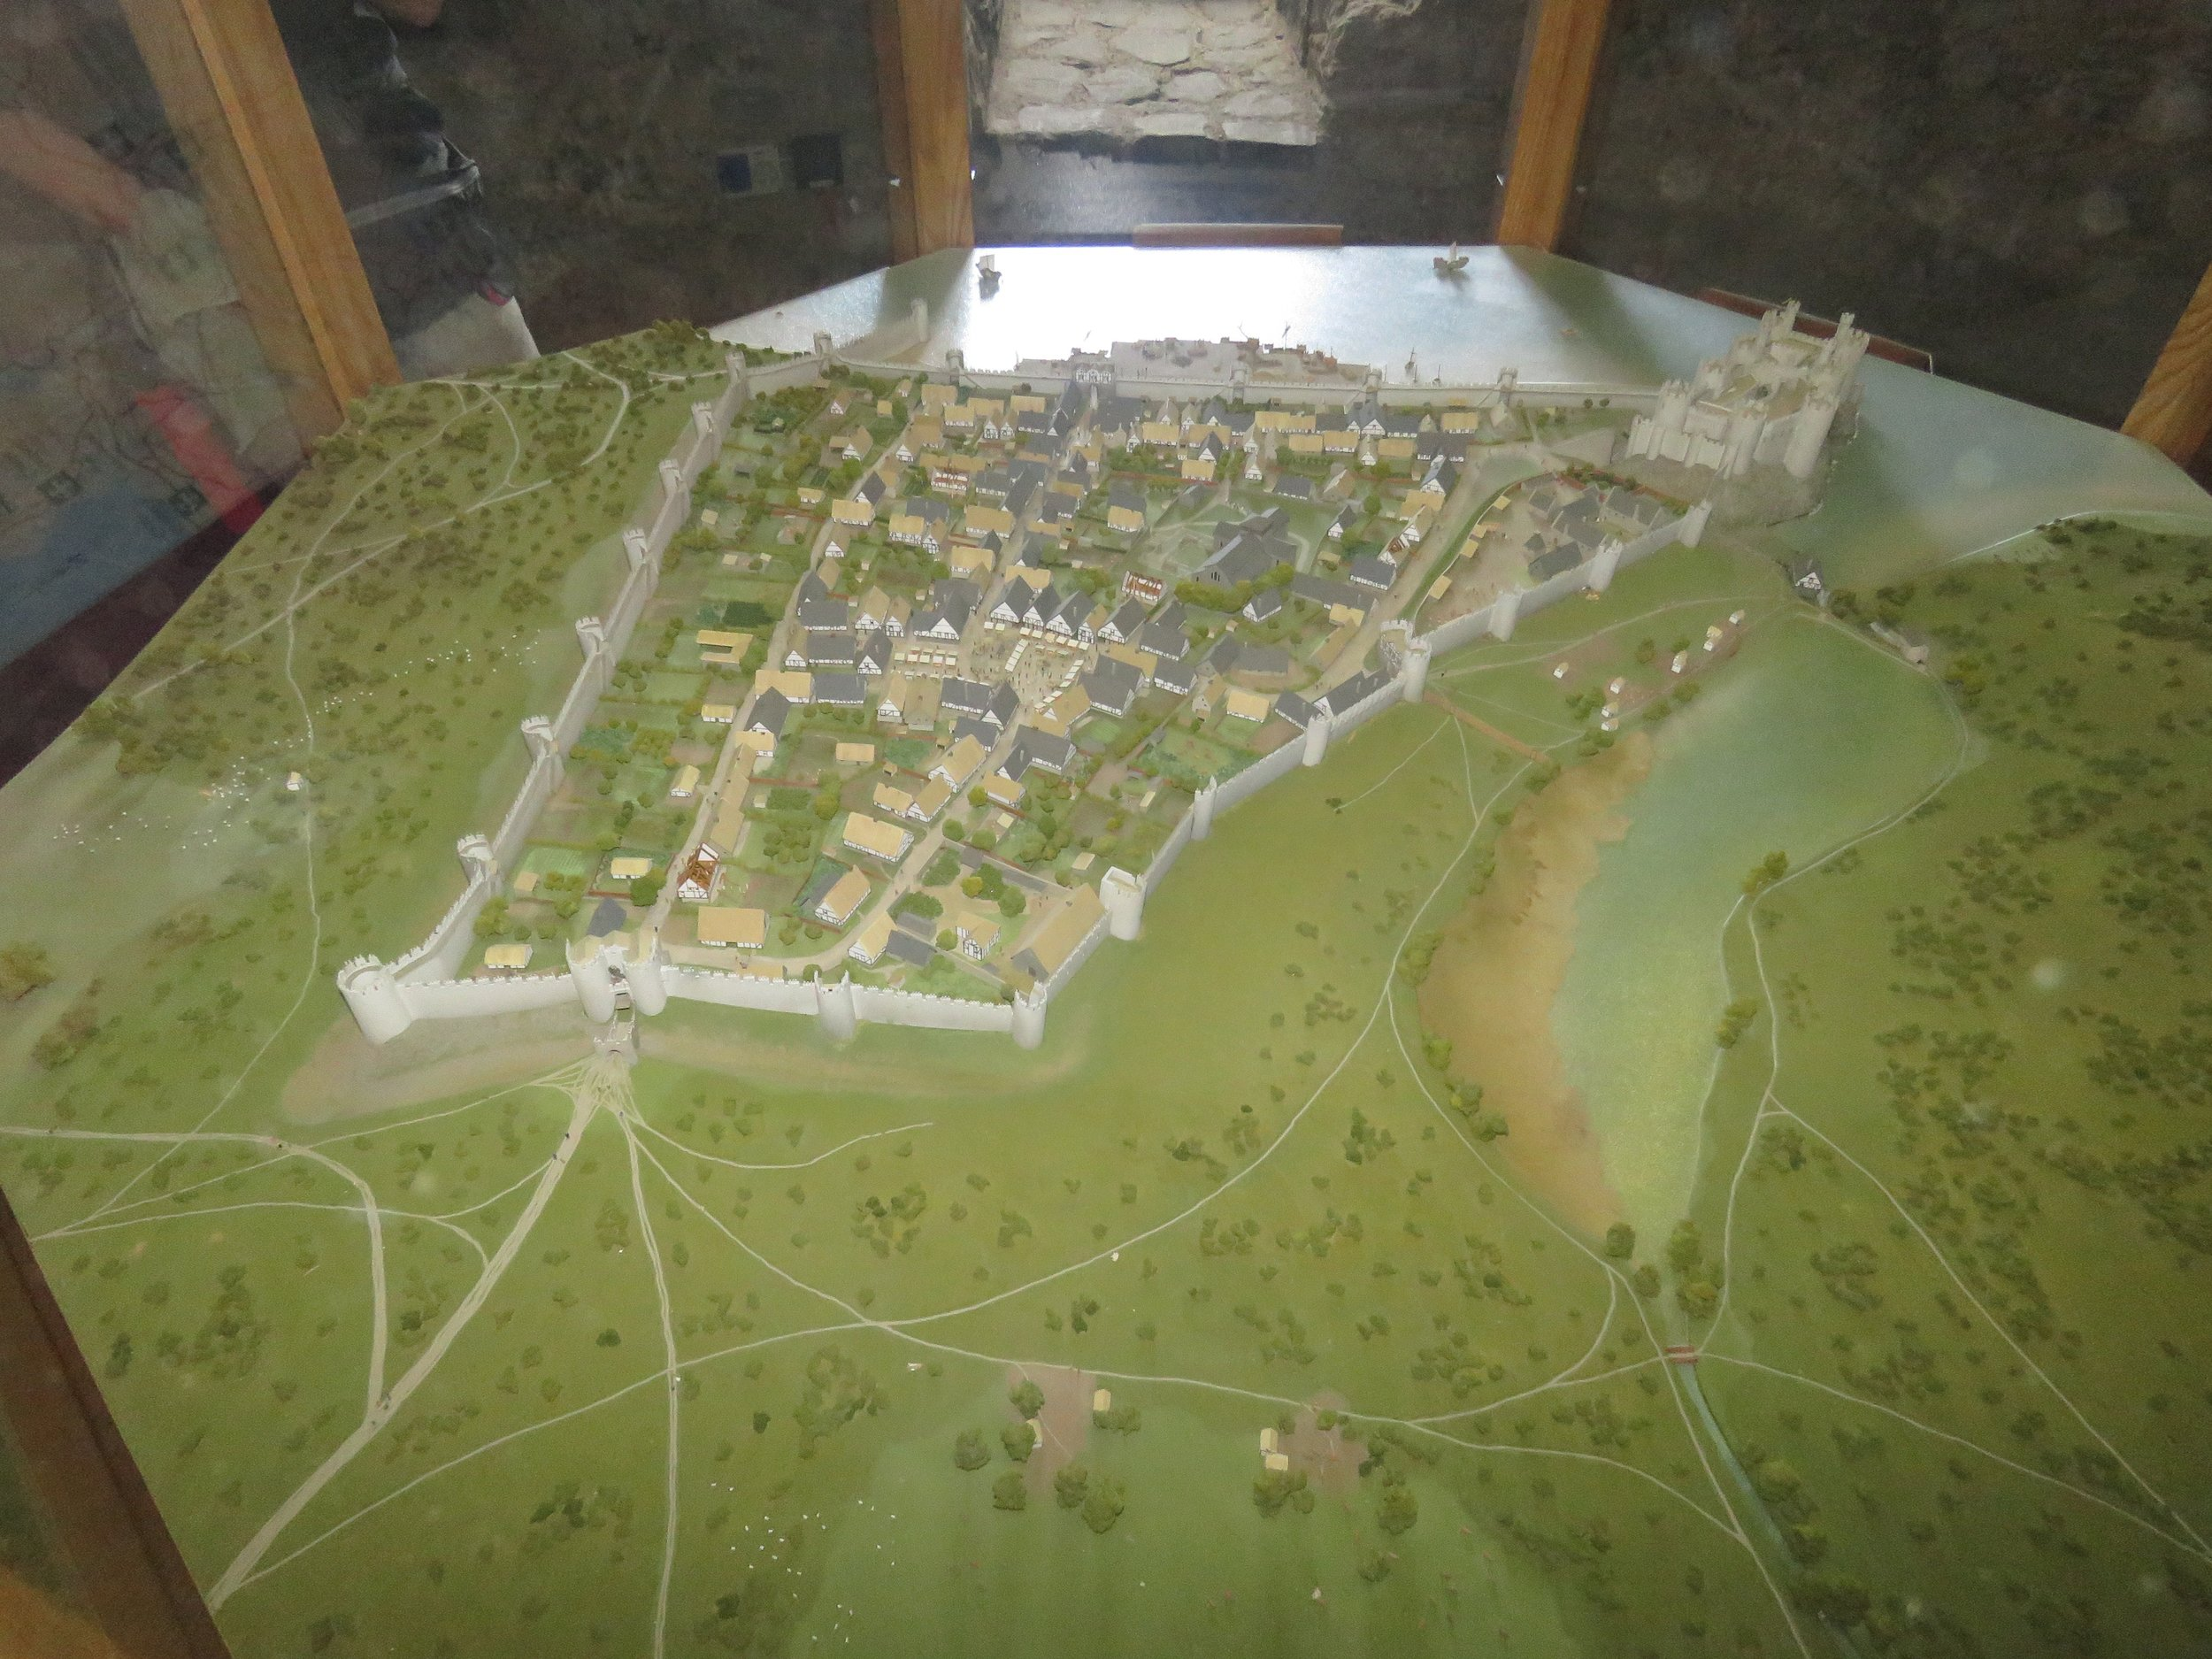 Model of the castle to give you an idea of the layout and scope